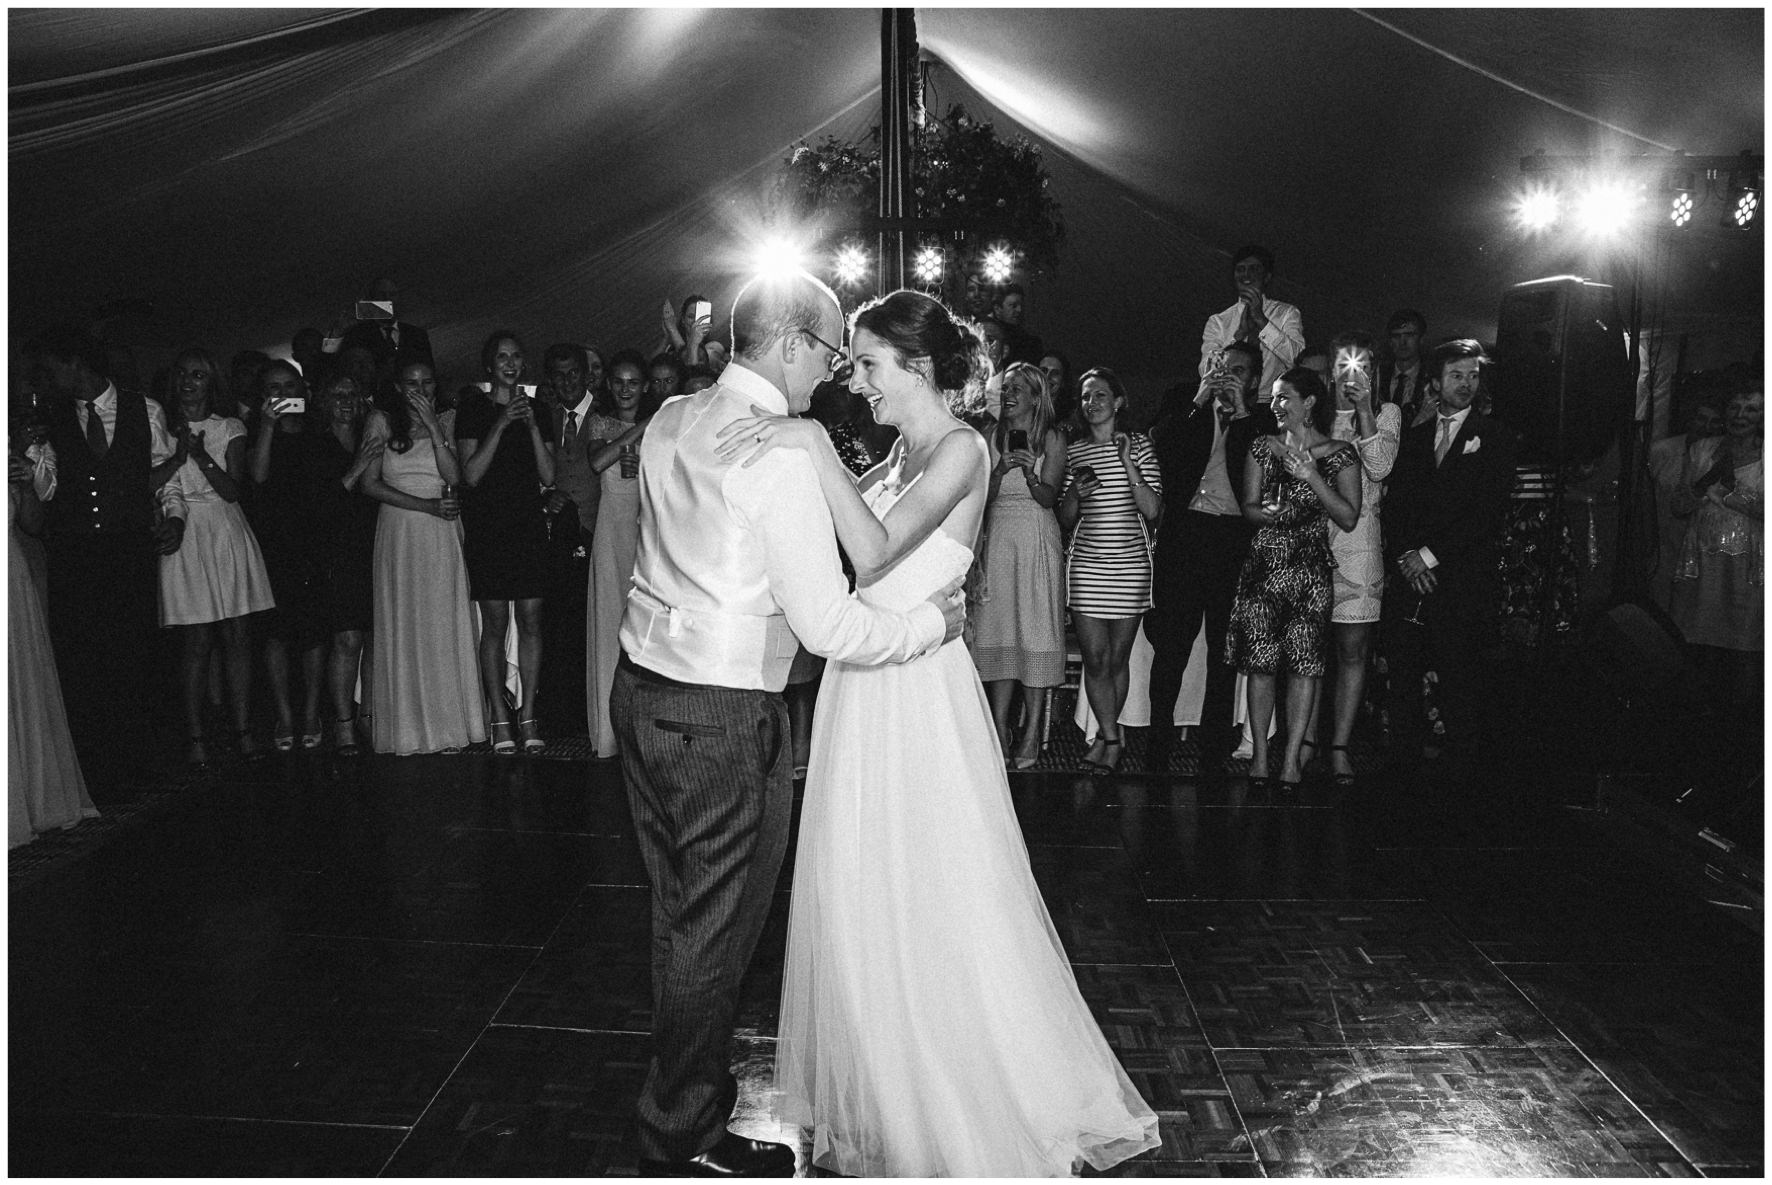 Lucy Davenport Photography, Cornwell Manor, wedding venue, Oxfordshire, Cotswold wedding, marquee wedding, marquee, first dance